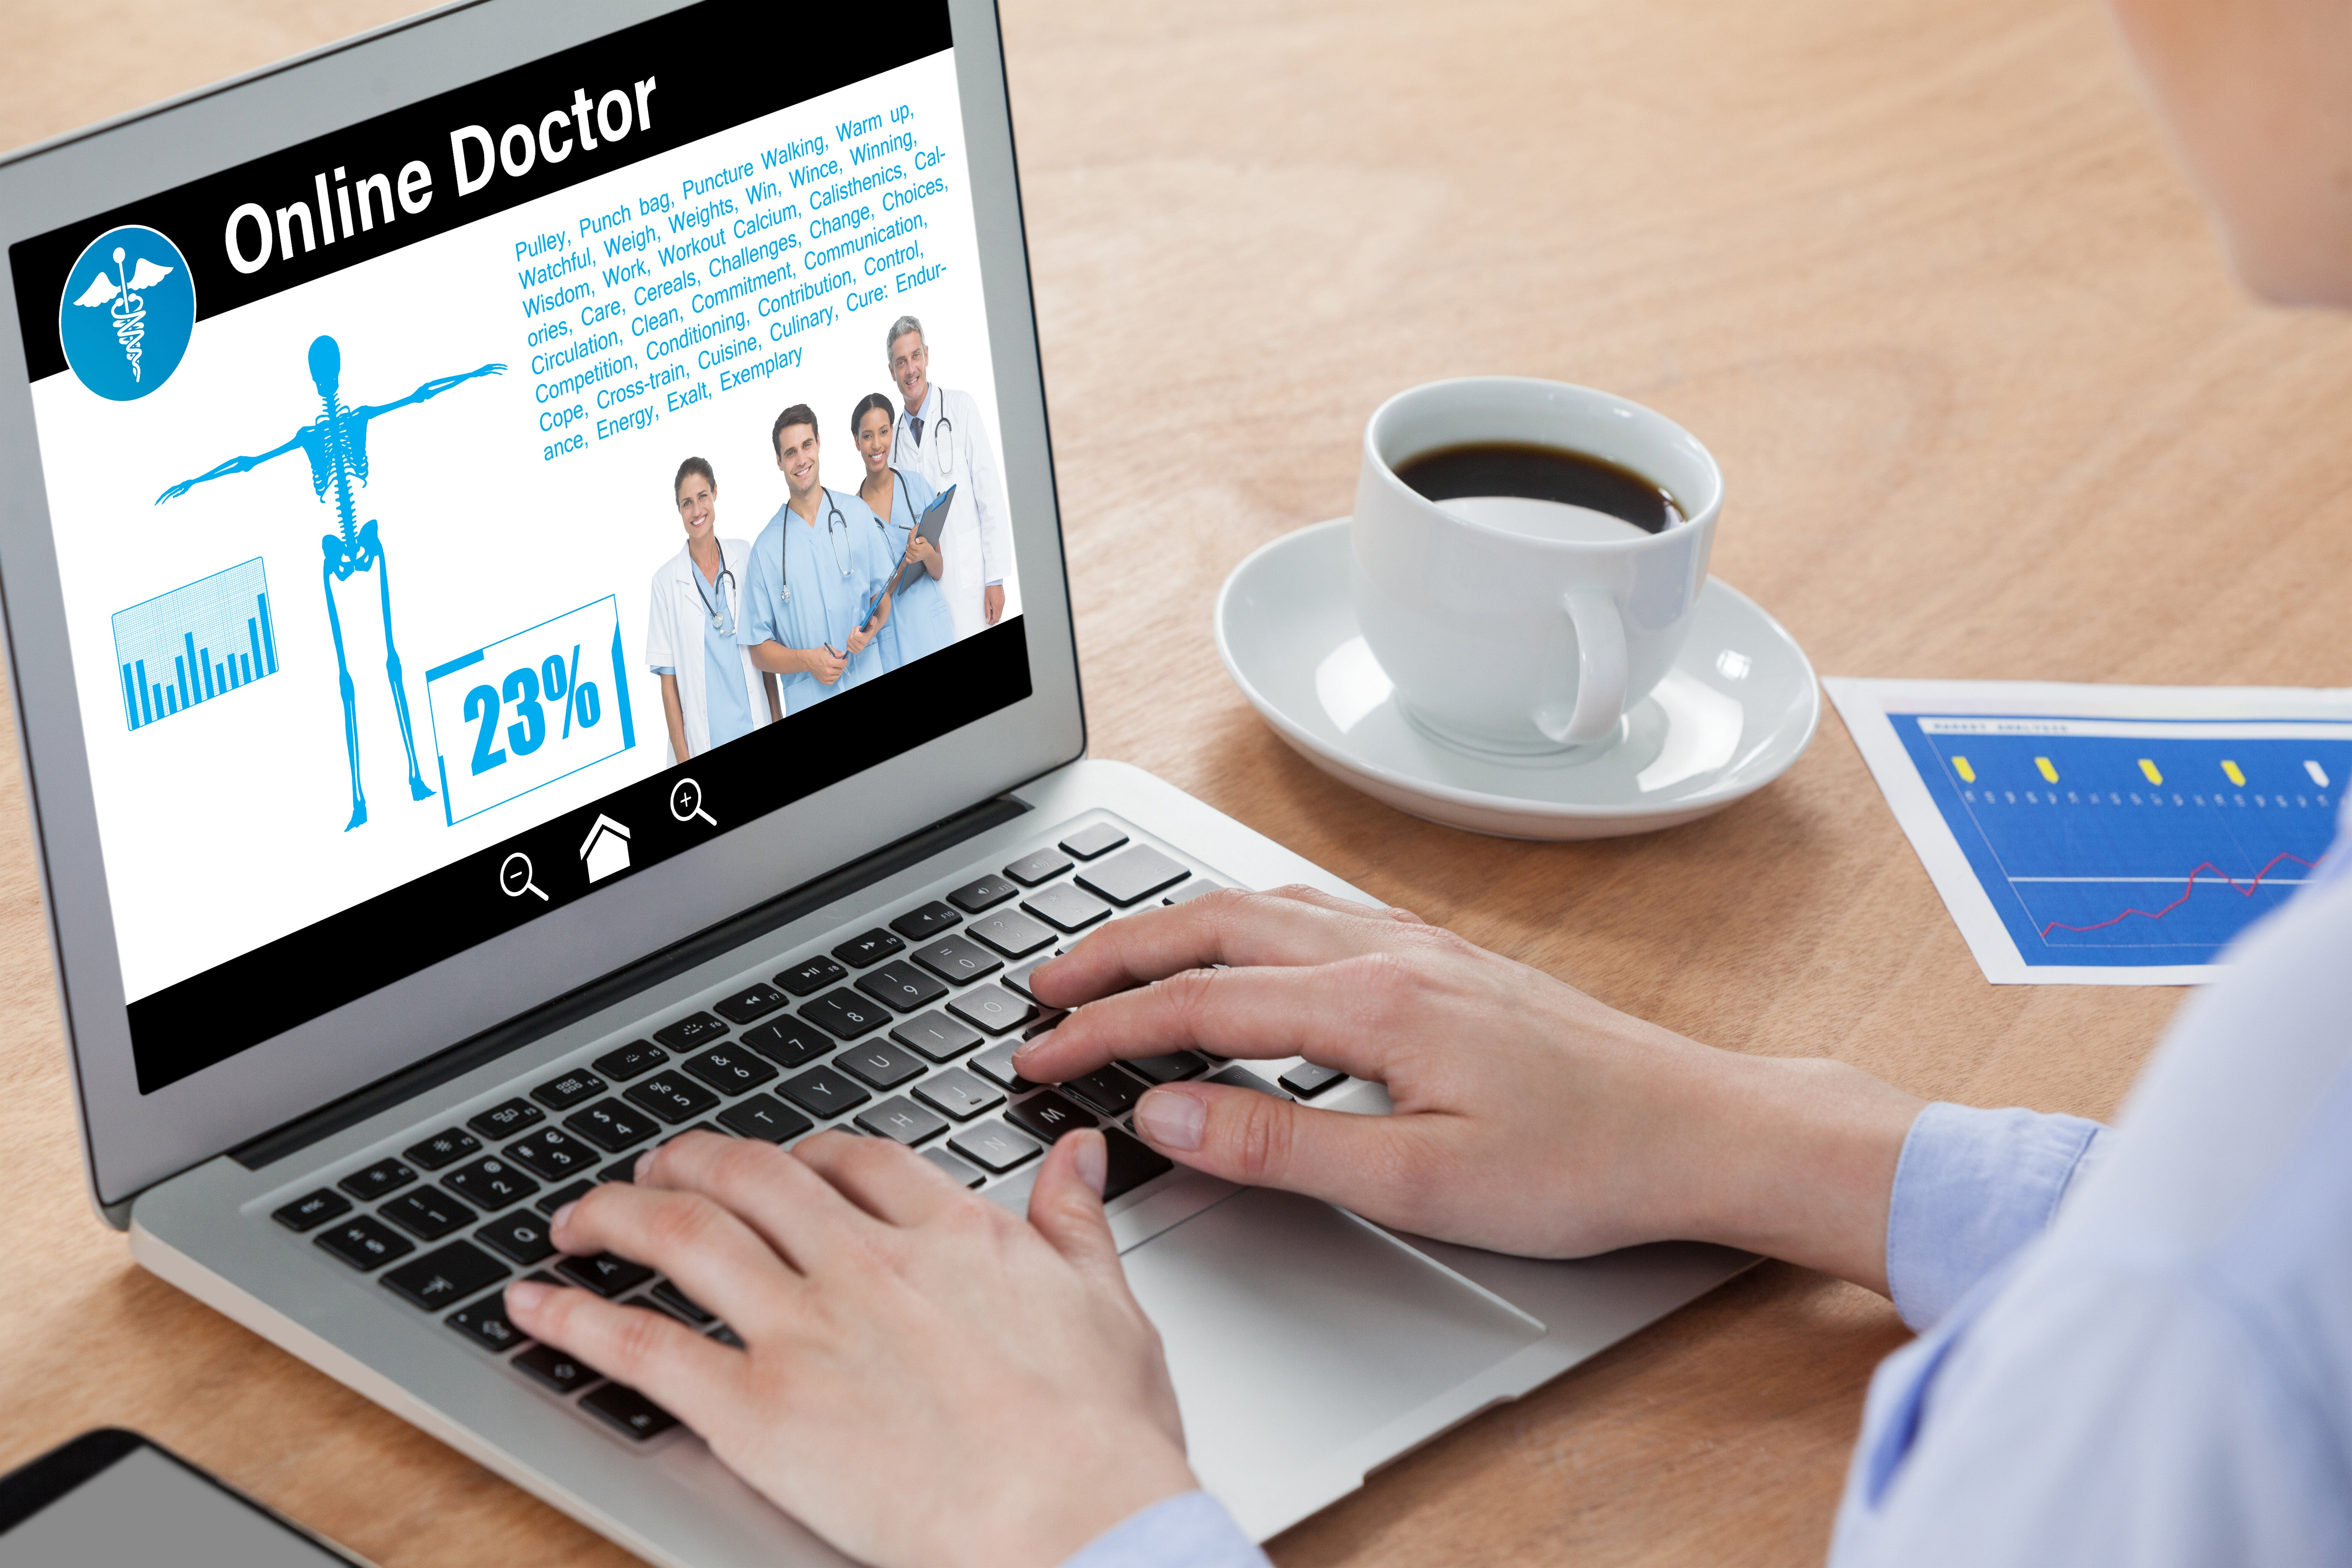 Guide To Finding Credible Medical Info Advice Spring Arbor